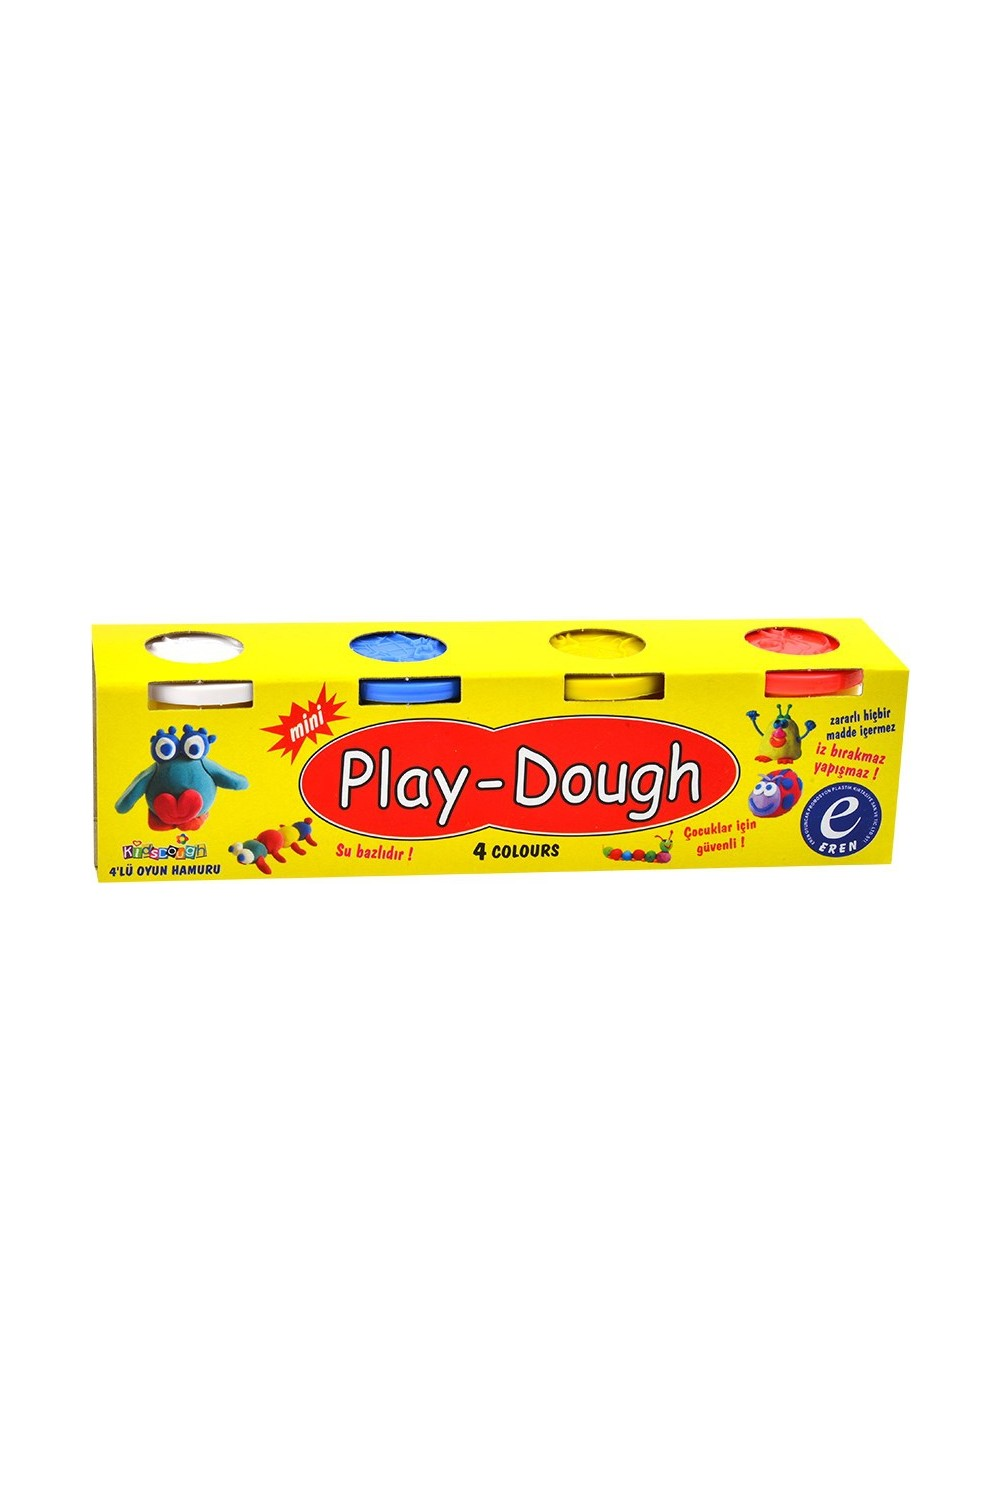 Wildlebend Game 4 Color wheat dough (Small Size) - Play Dough